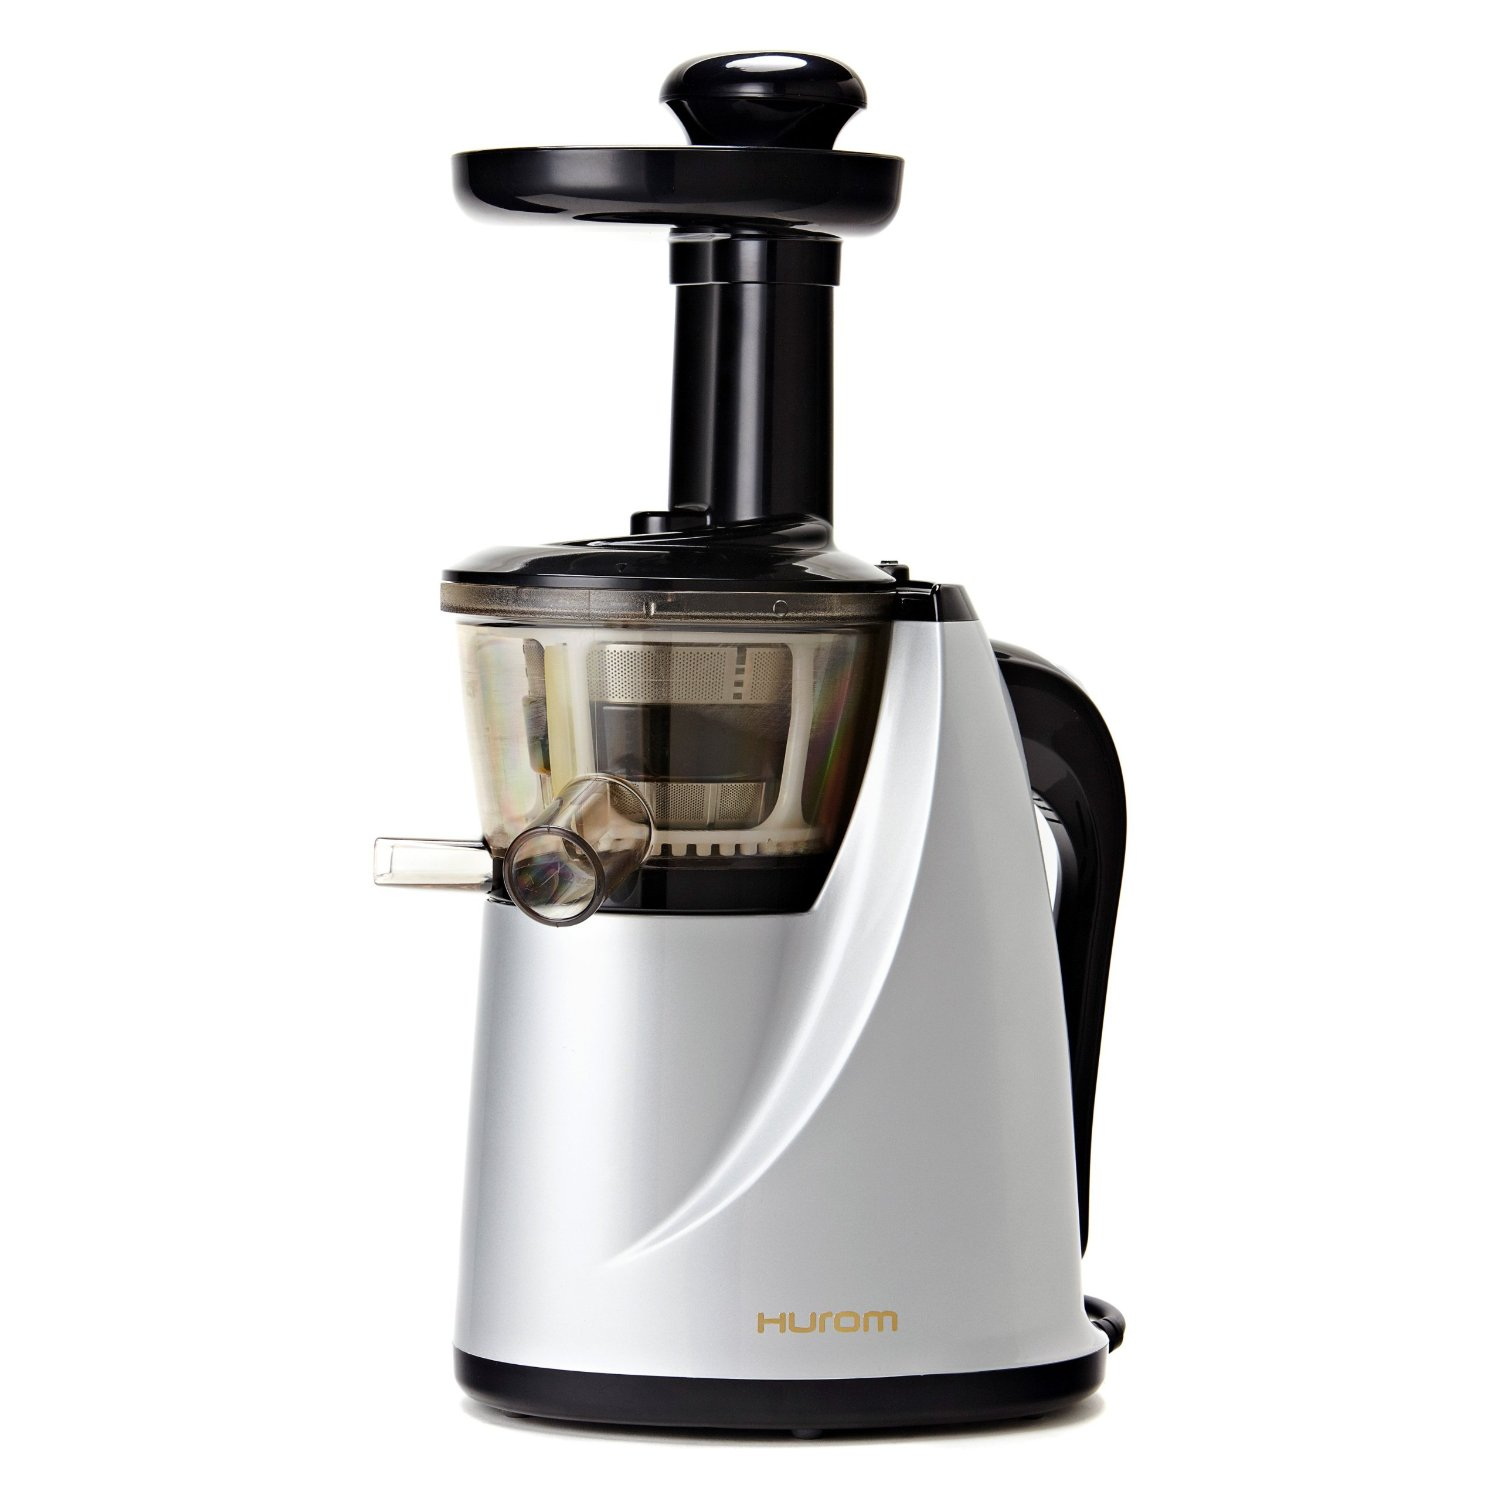 Hurom Premium Slow Juicer Hh Wbb07 : Hurom HU-100 Masticating Slow Juicer Review - Best Cold Press Juicers